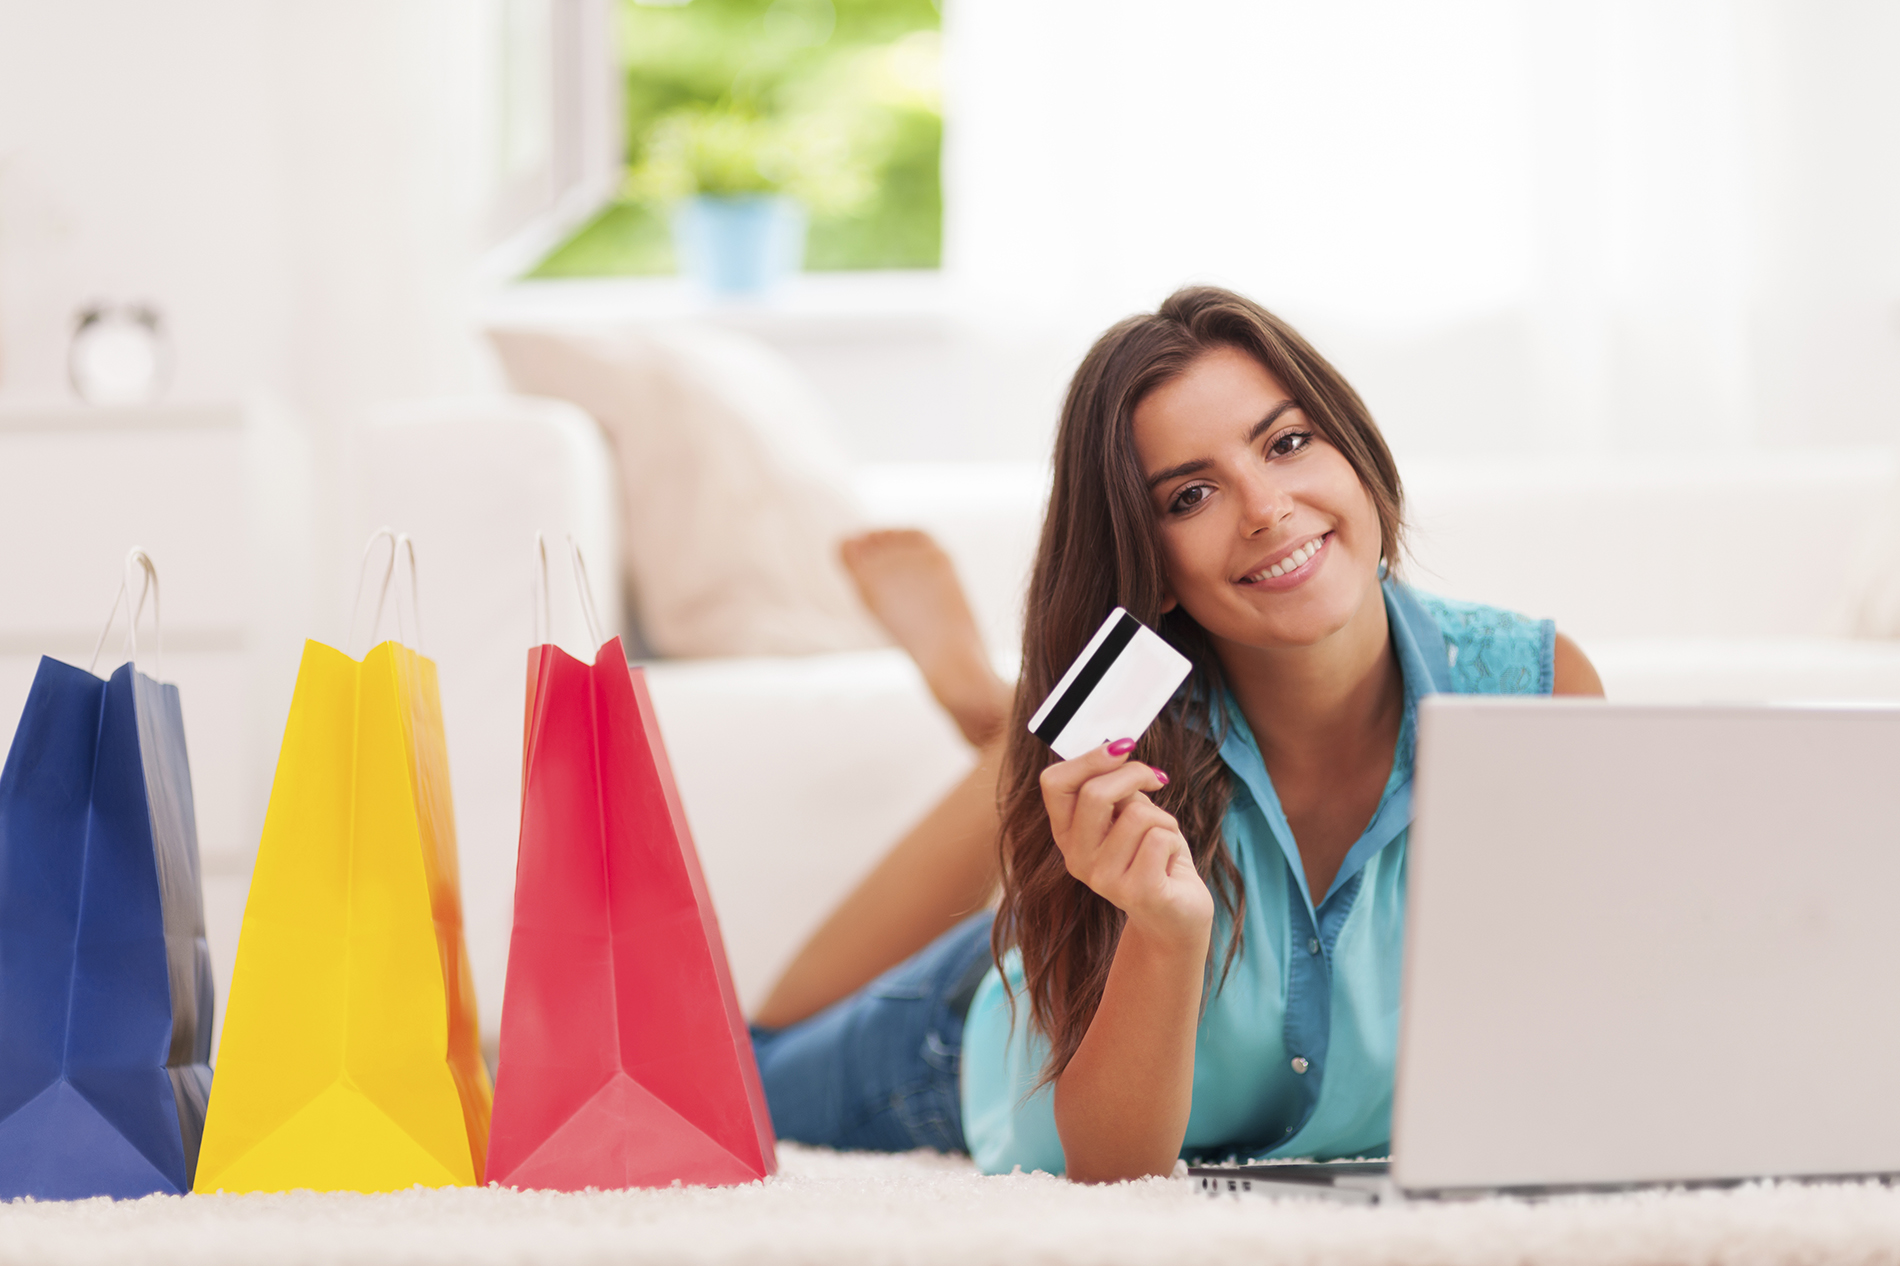 Customer purchasing after omnichannel touchpoint